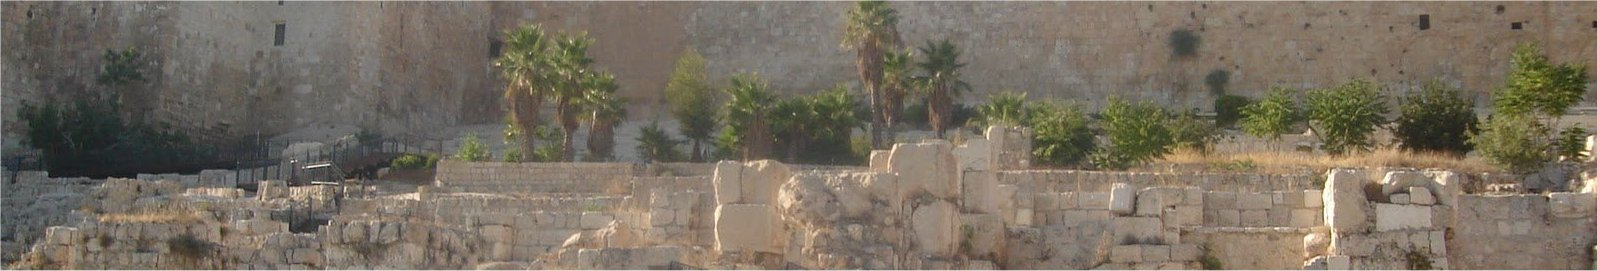 Location of Solomon's Temple